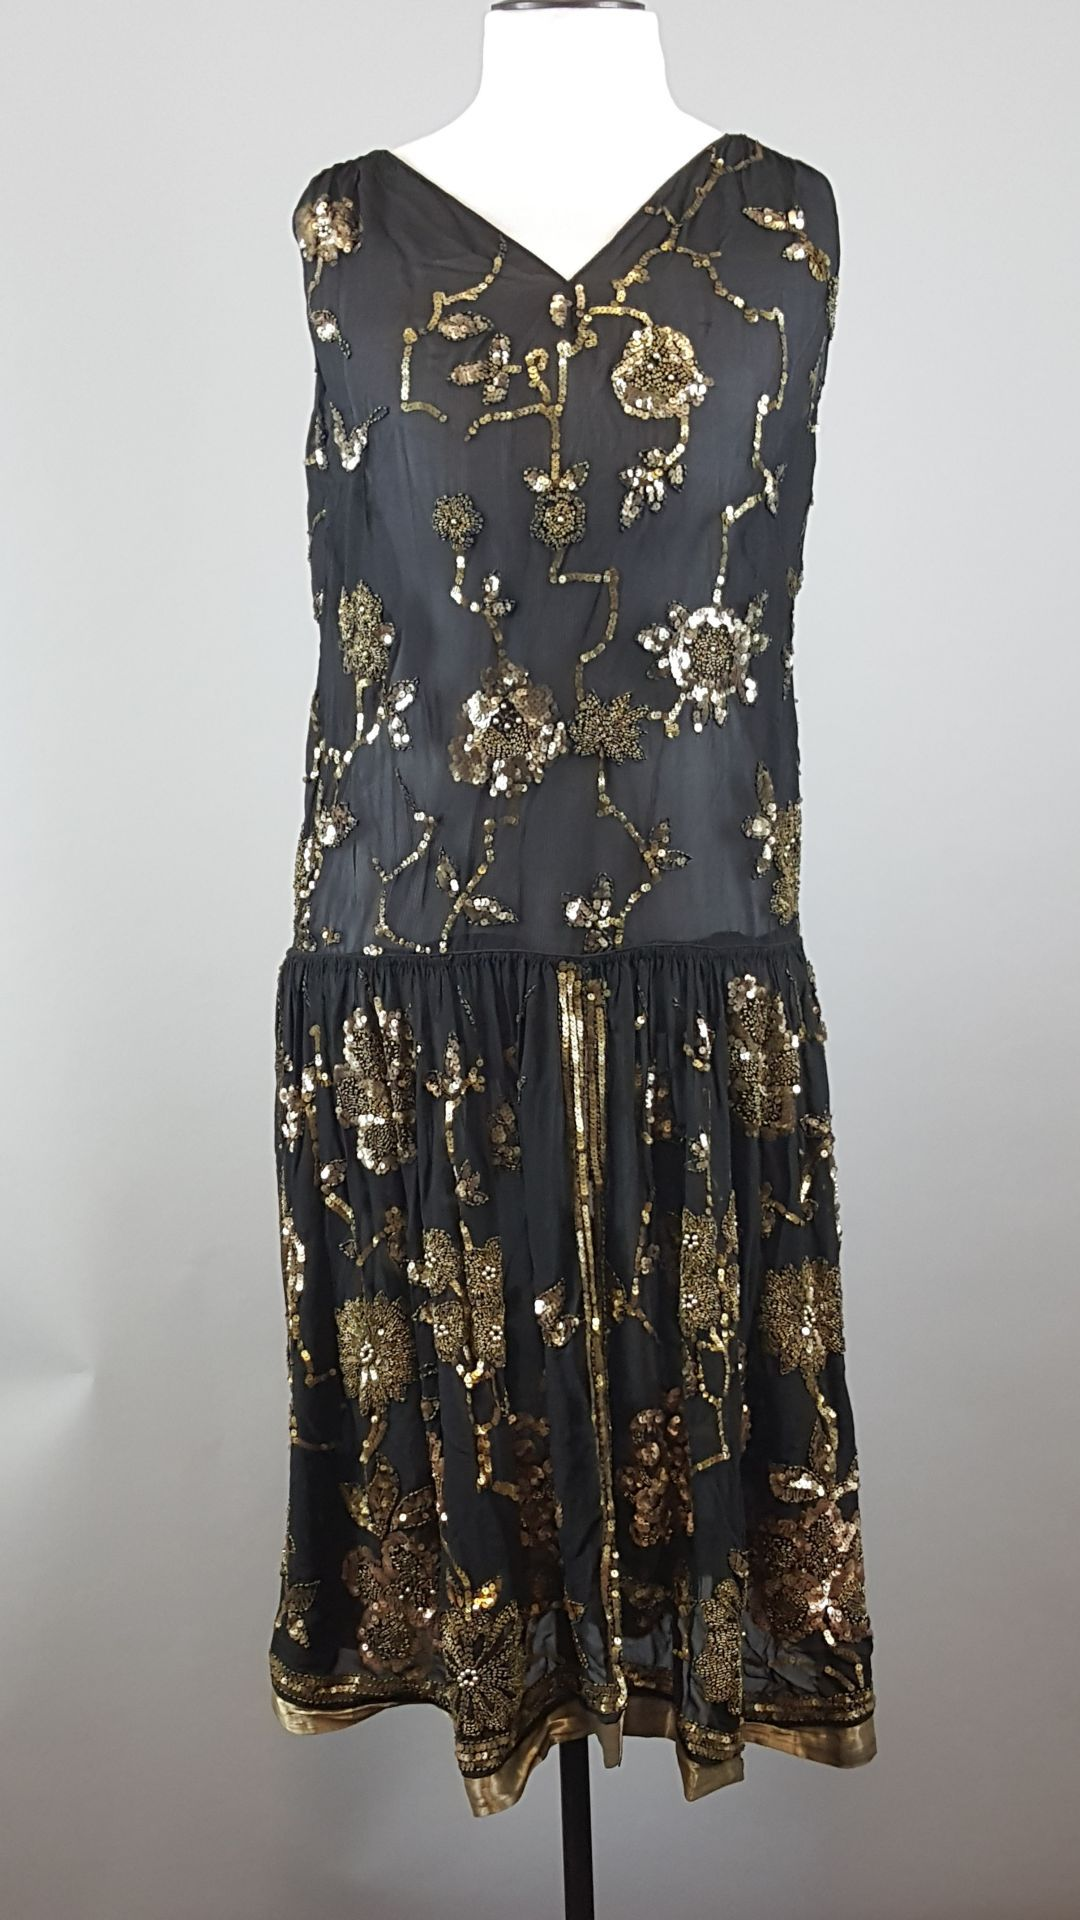 Things That Matter: 1920s French dress